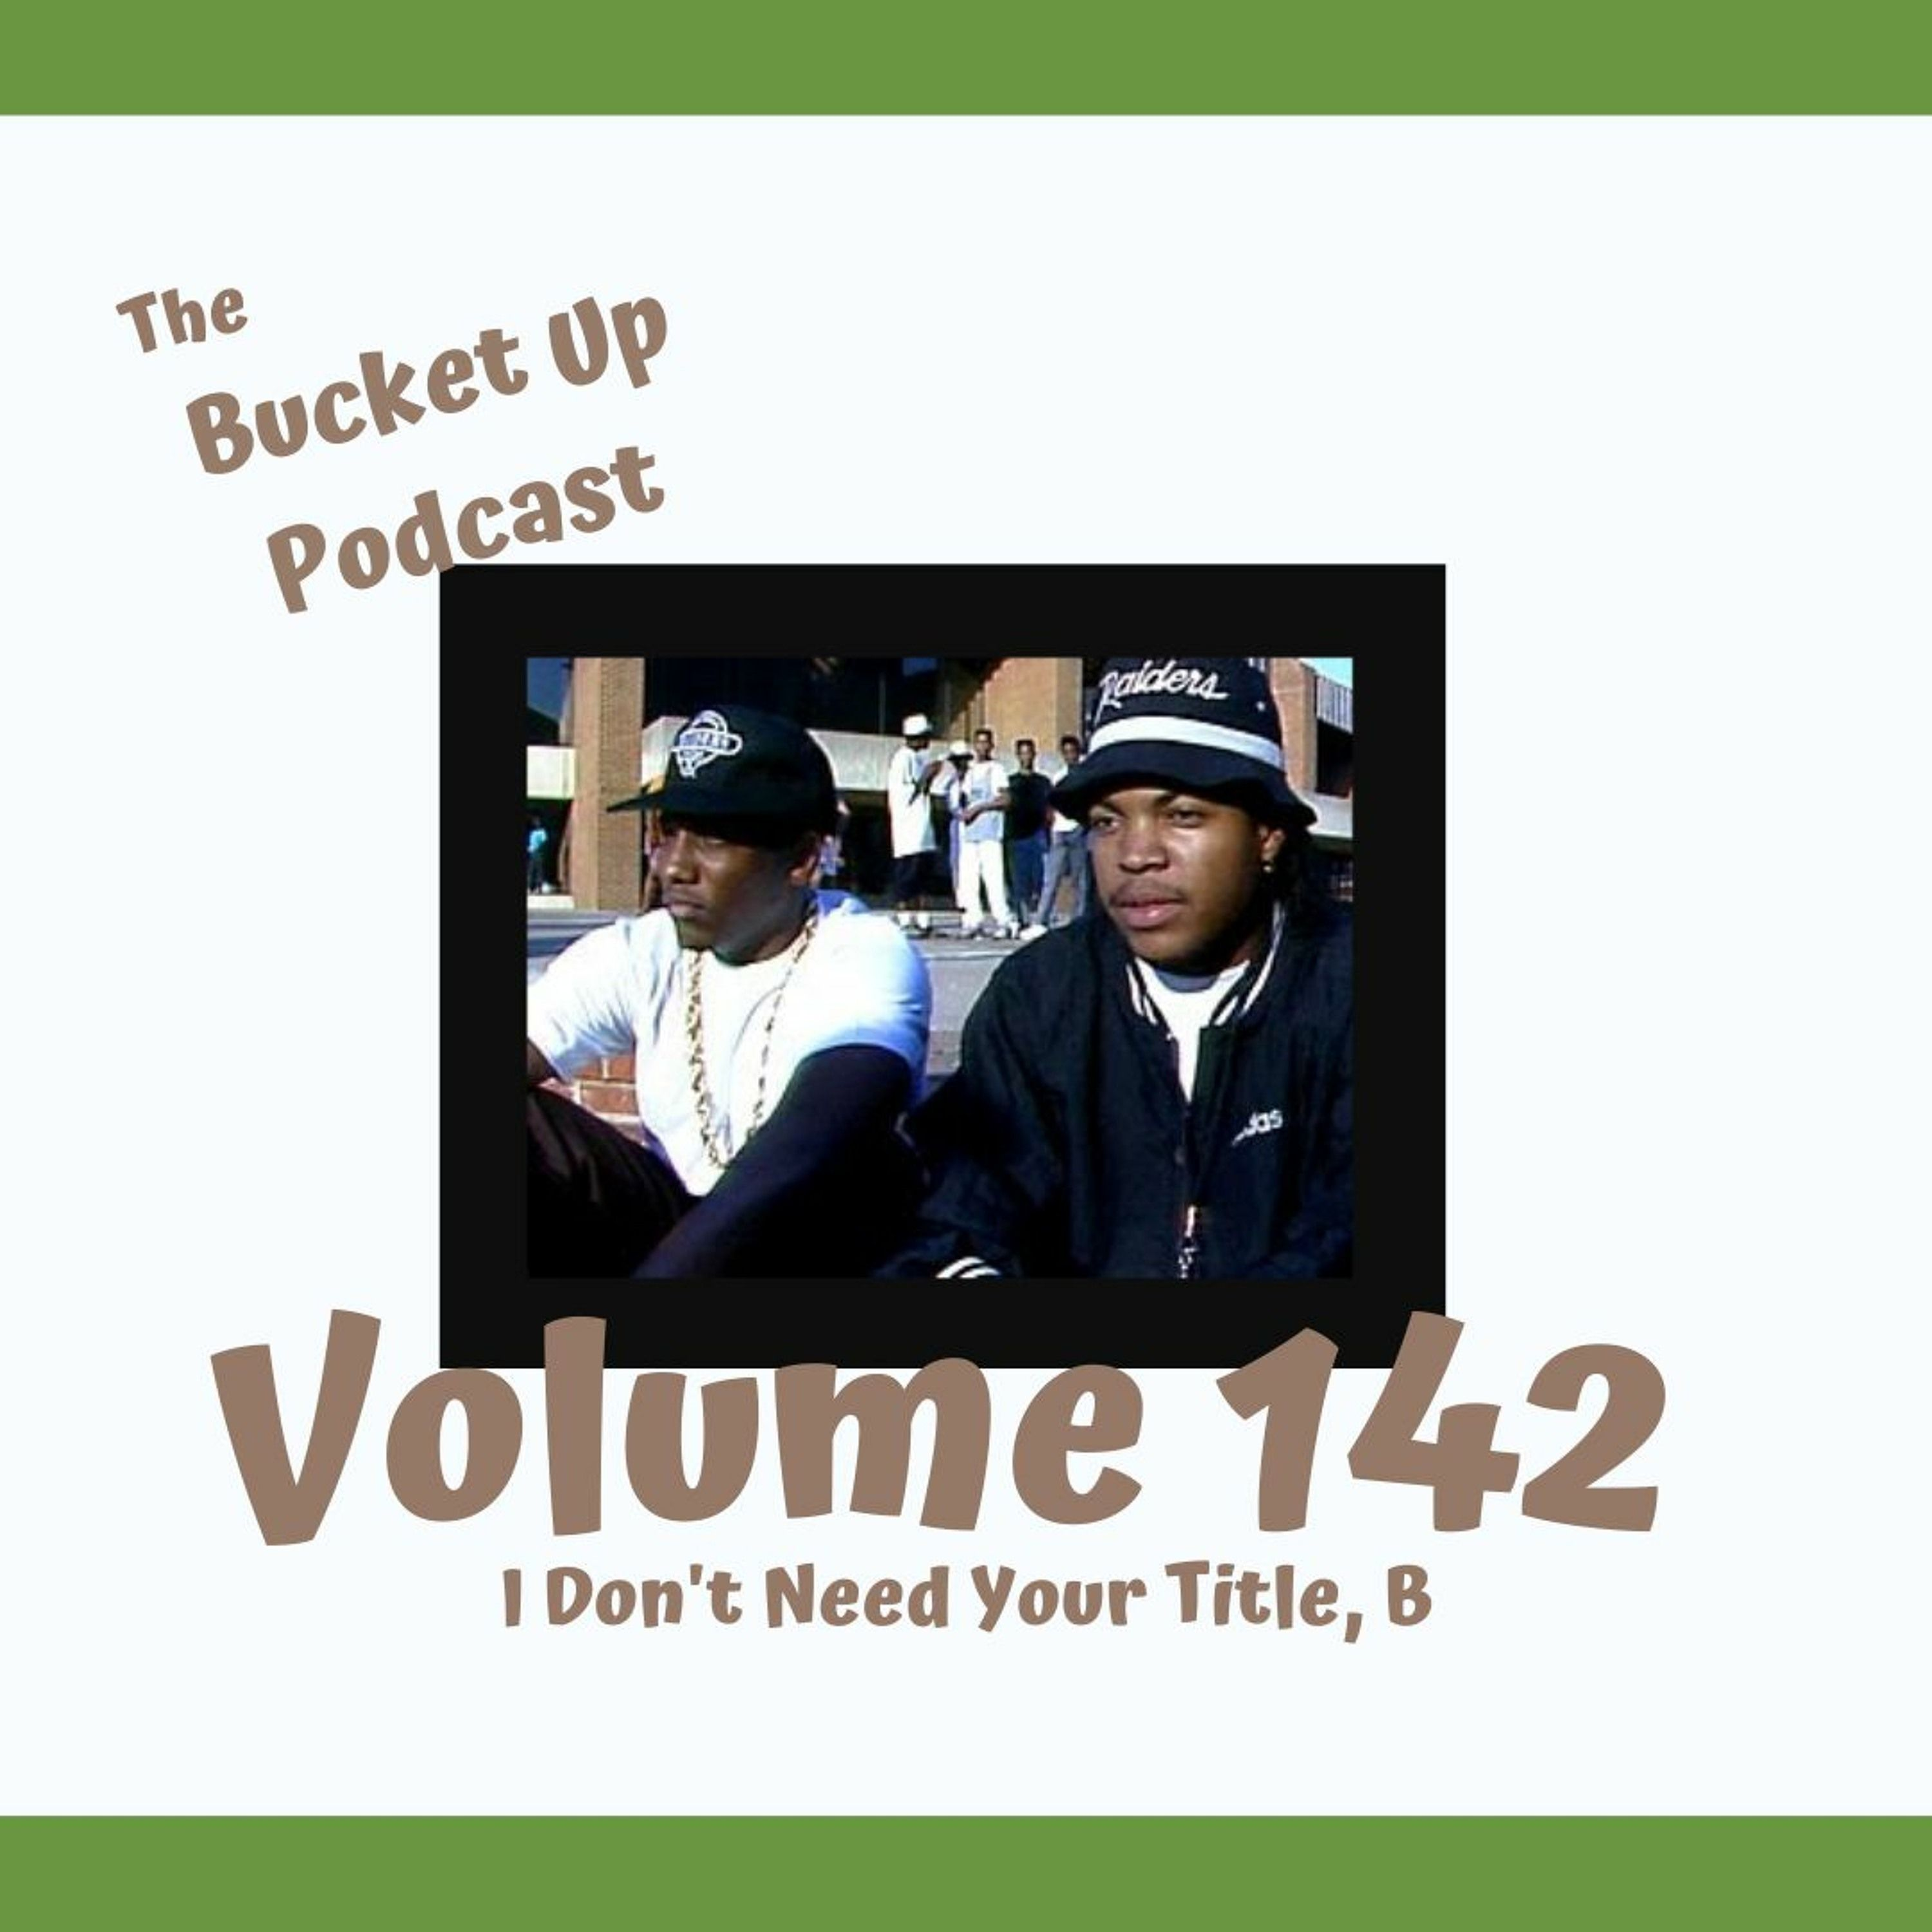 Volume 142: I Don't Need Your Title, B